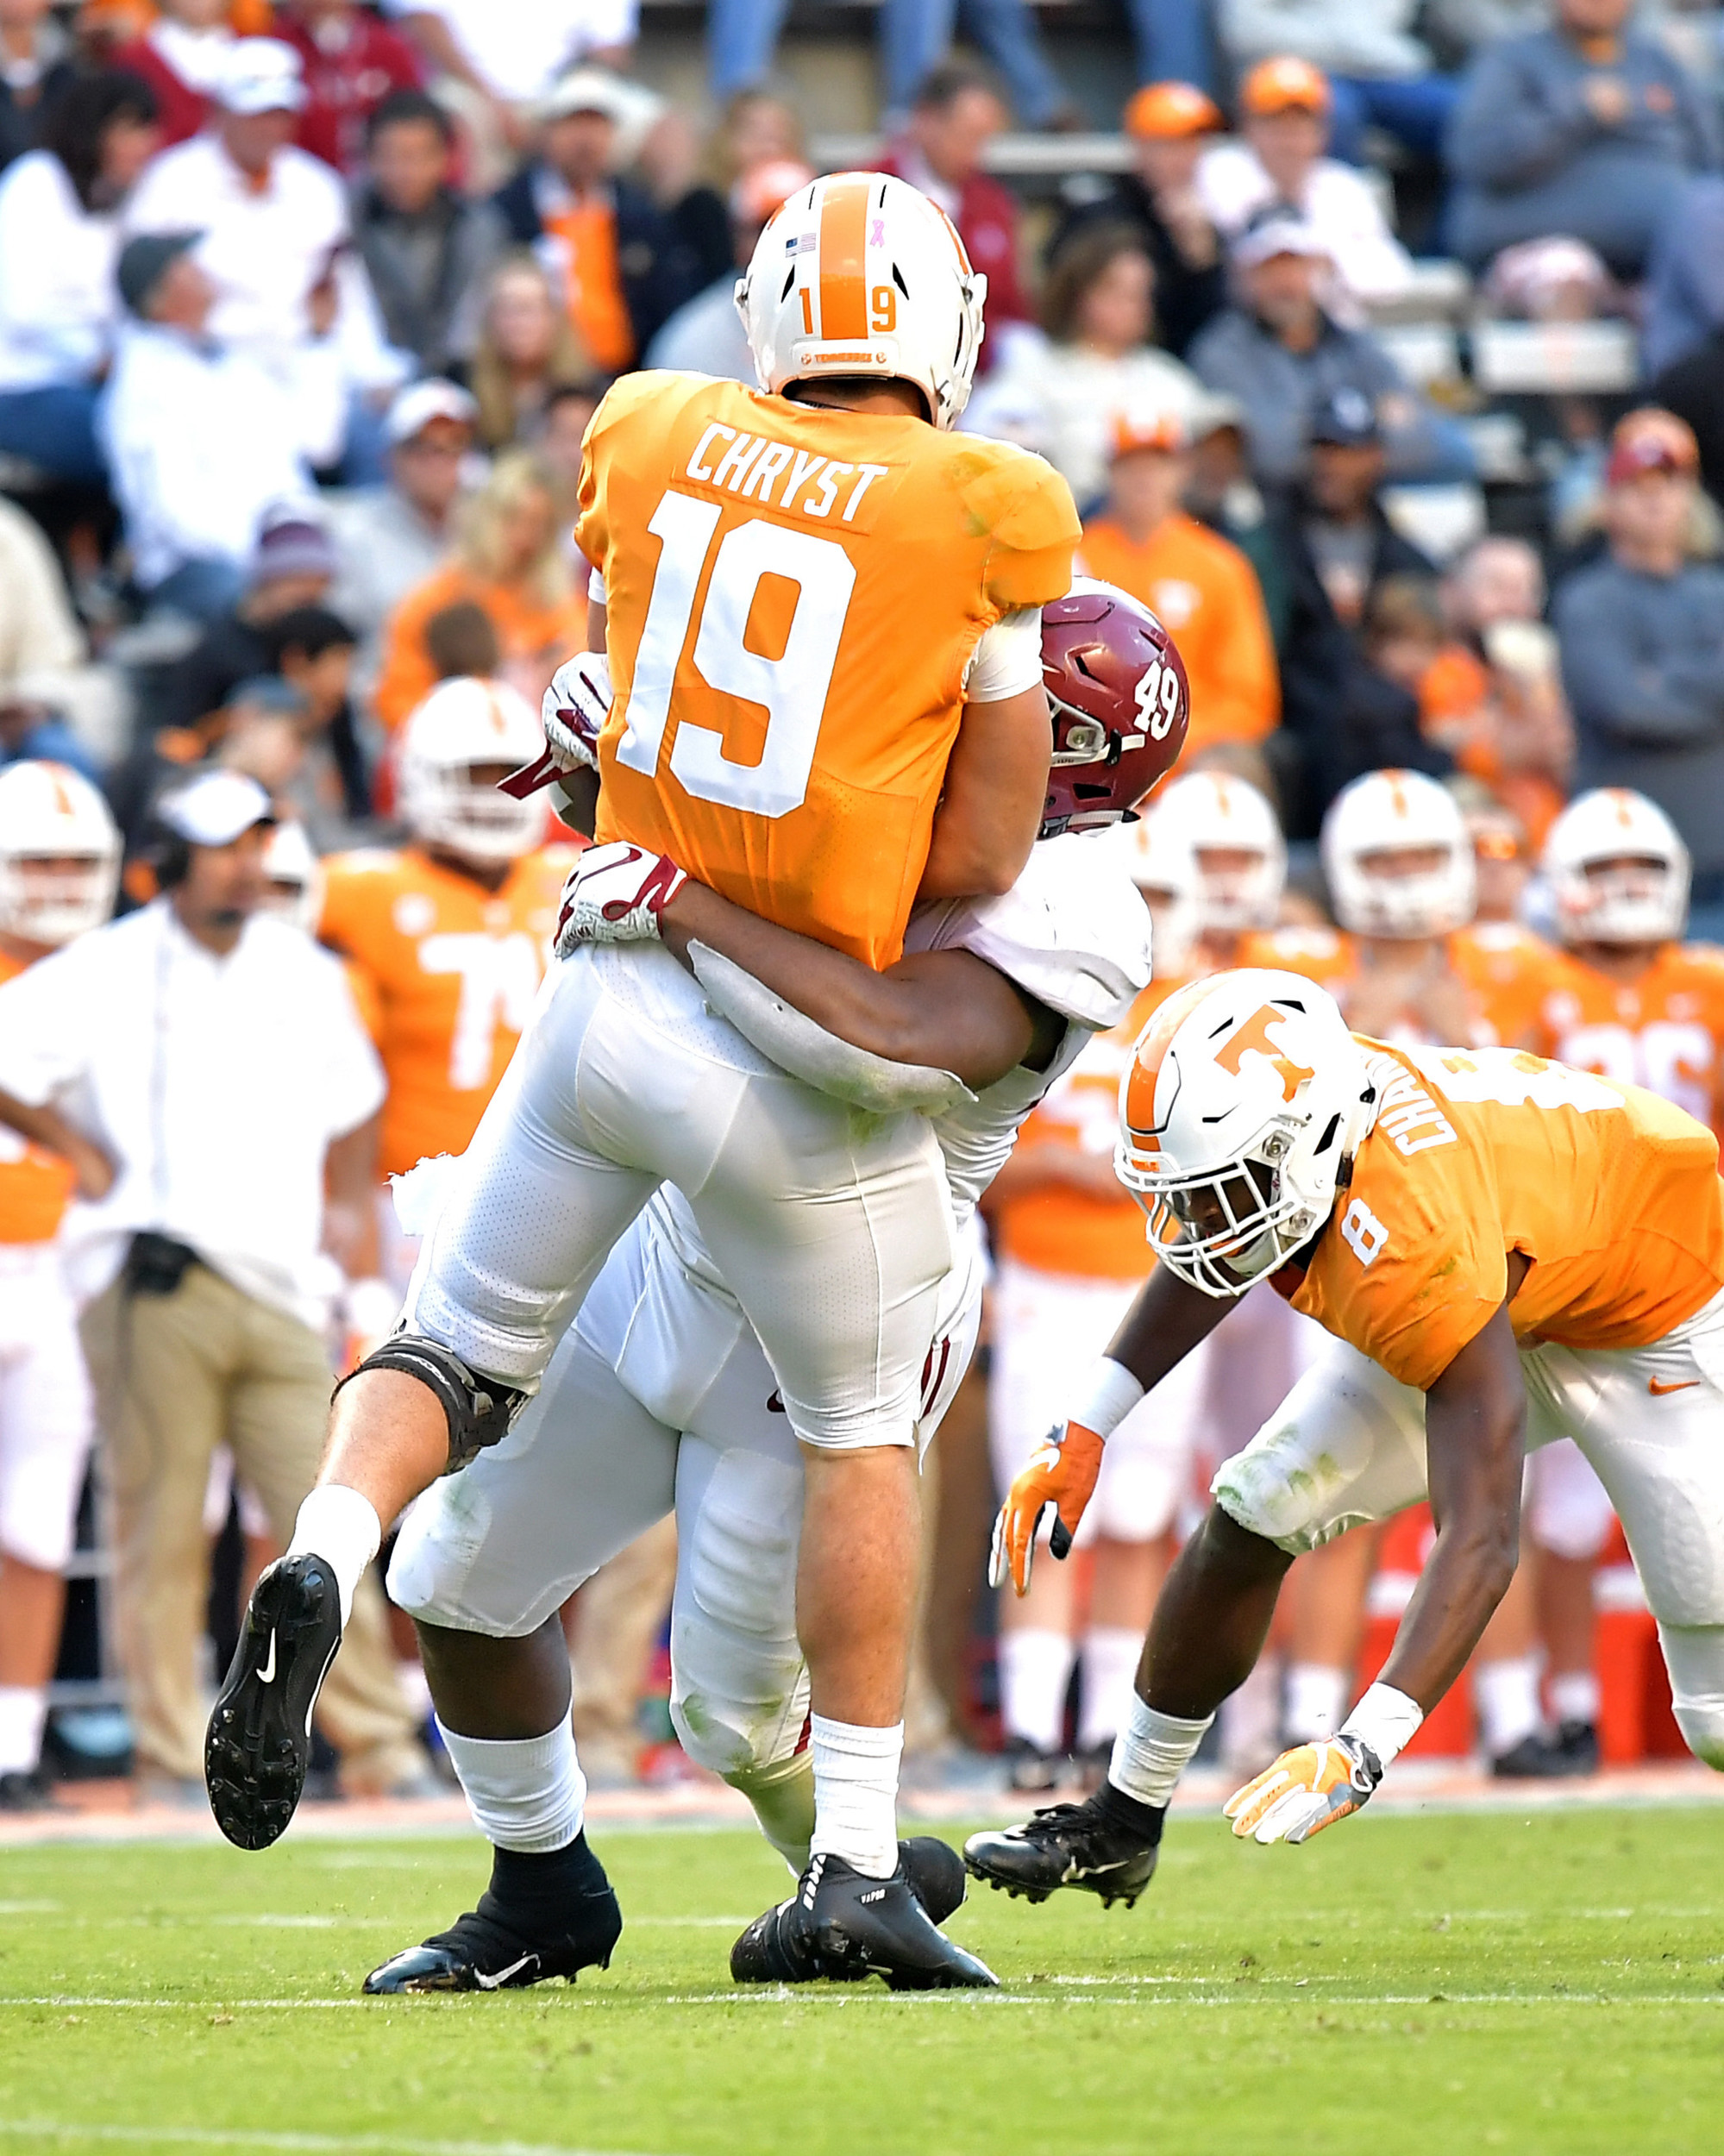 Tennessee Volunteers backup quarterback Keller Chryst (19) barely gets a pass off prior to a hit by Alabama Crimson Tide defensive lineman Isaiah Buggs (49) in the second half of the NCAA football game on Saturday, Oct. 20, 2018, at Neyland Stadium in Knoxville. Tenn. Alabama wins 58-21. (Photo by Lee Walls)